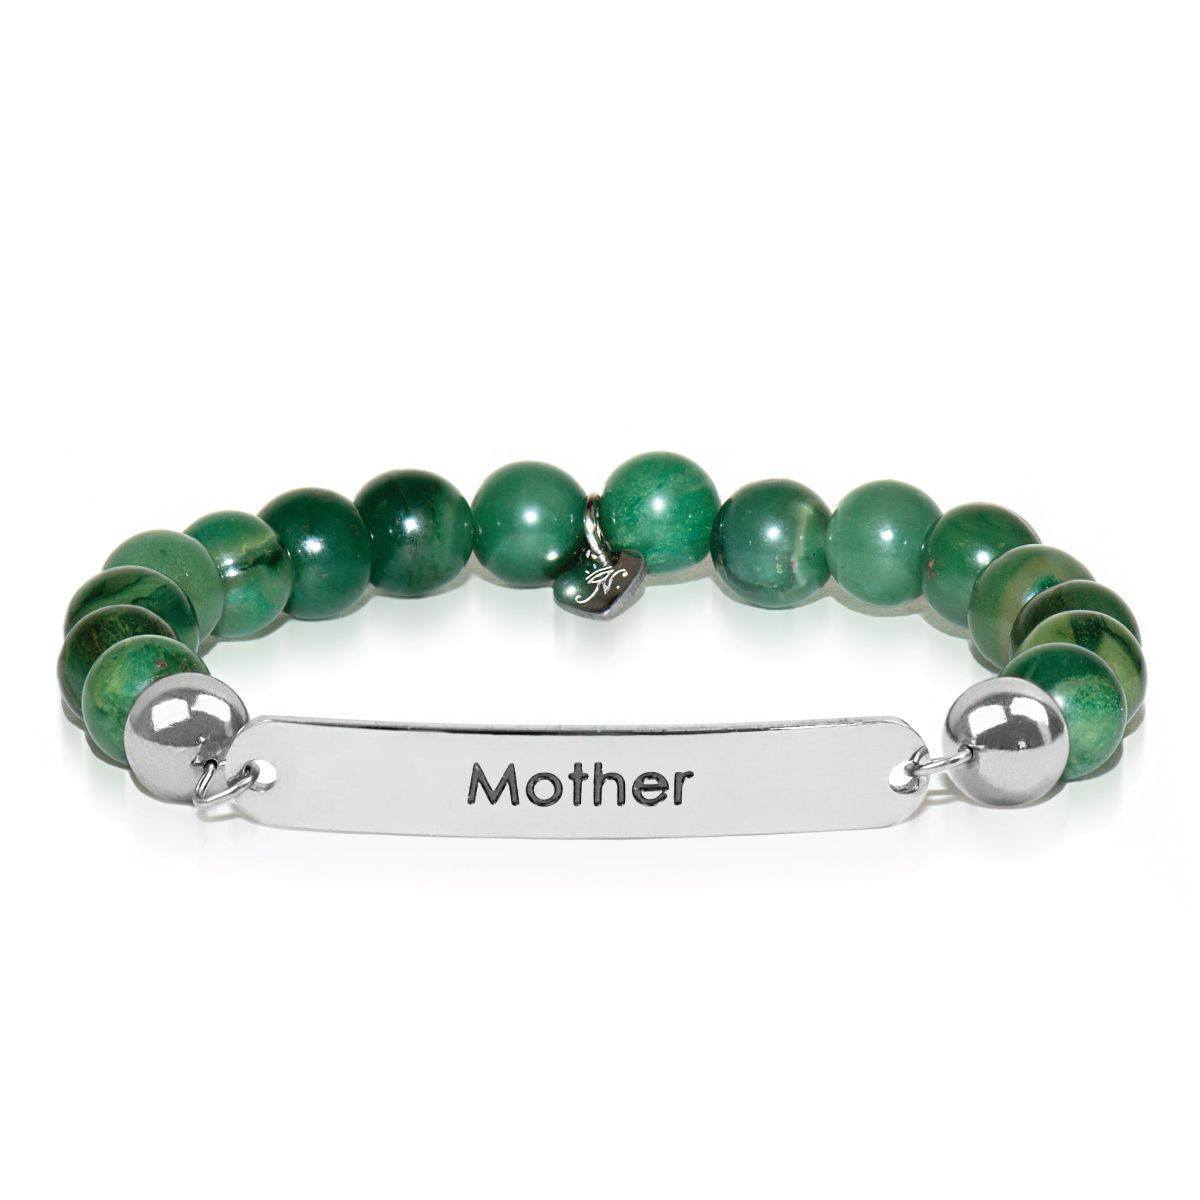 African Green Jade | Mother | Kindred Spirits Stone Bracelet